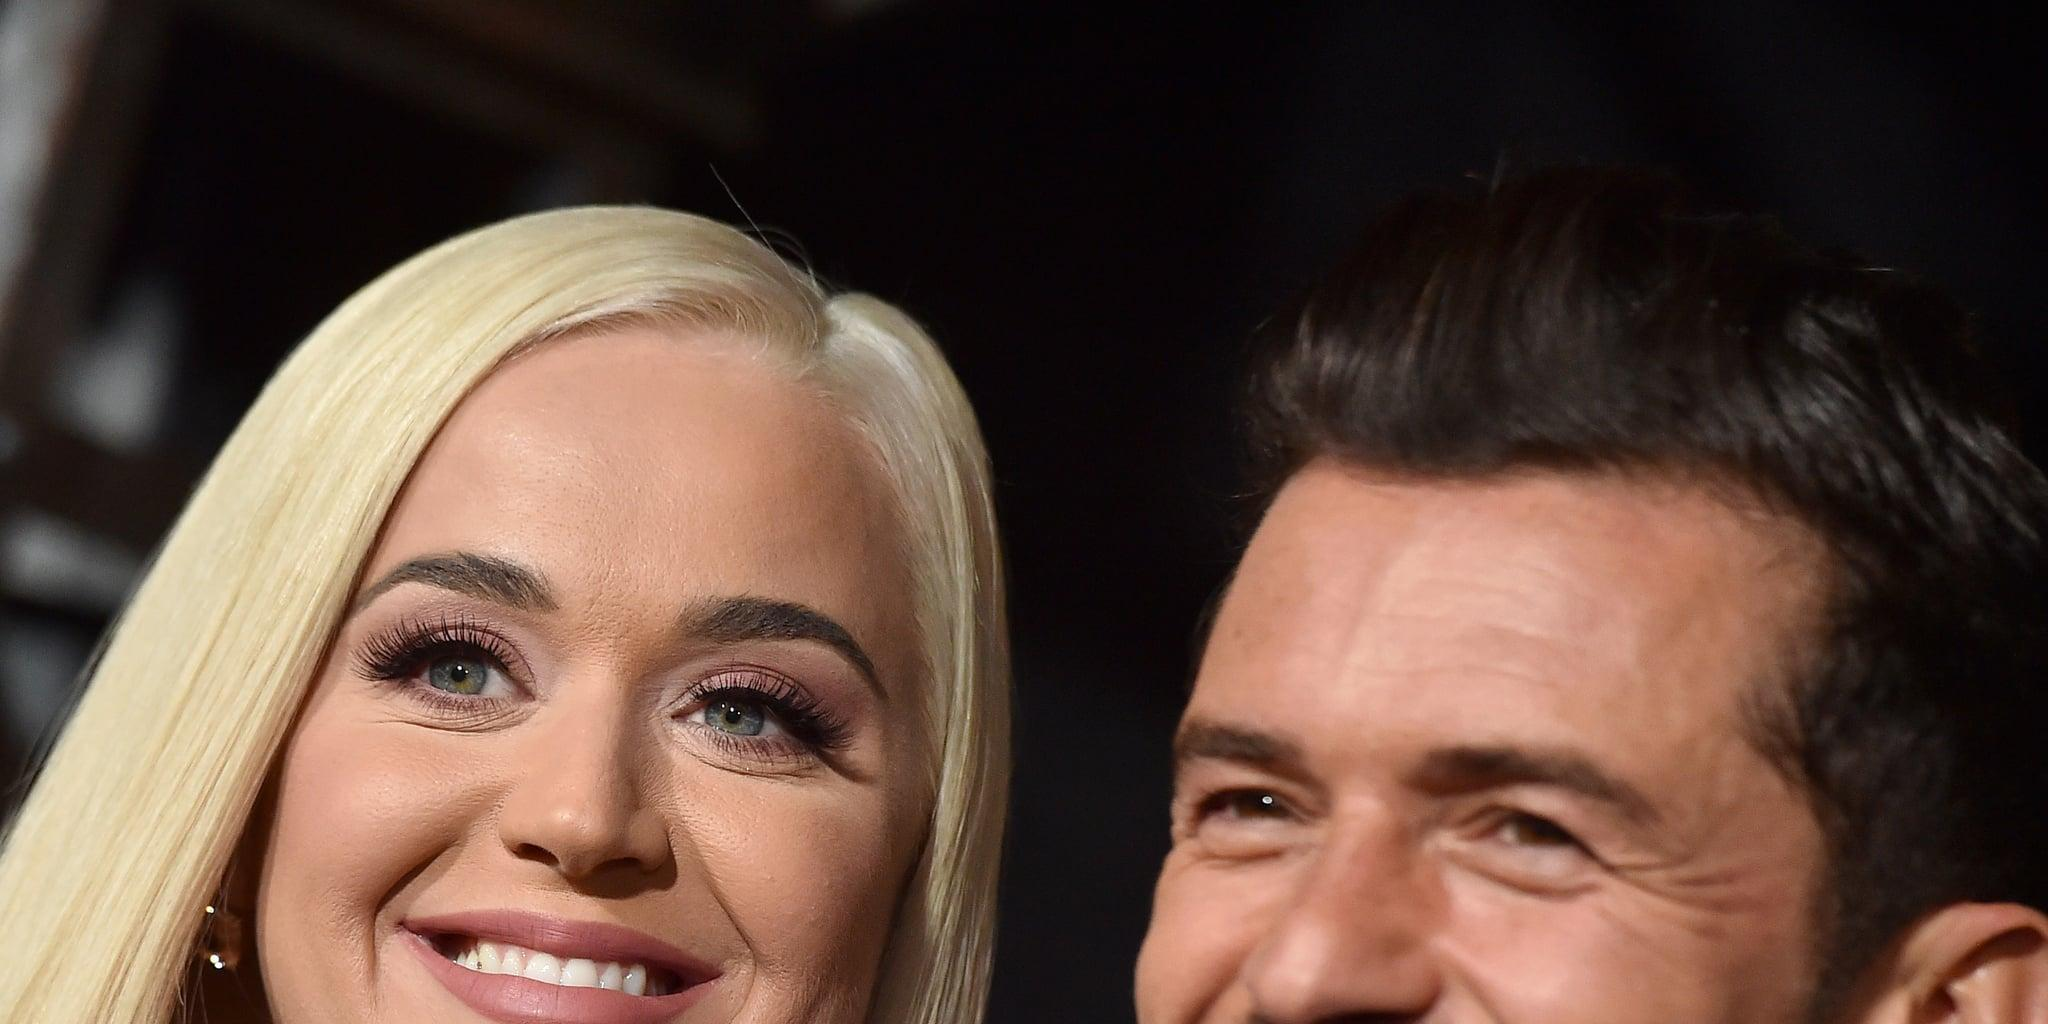 Orlando Bloom Says He 'Wants More Kids' With Katy Perry!